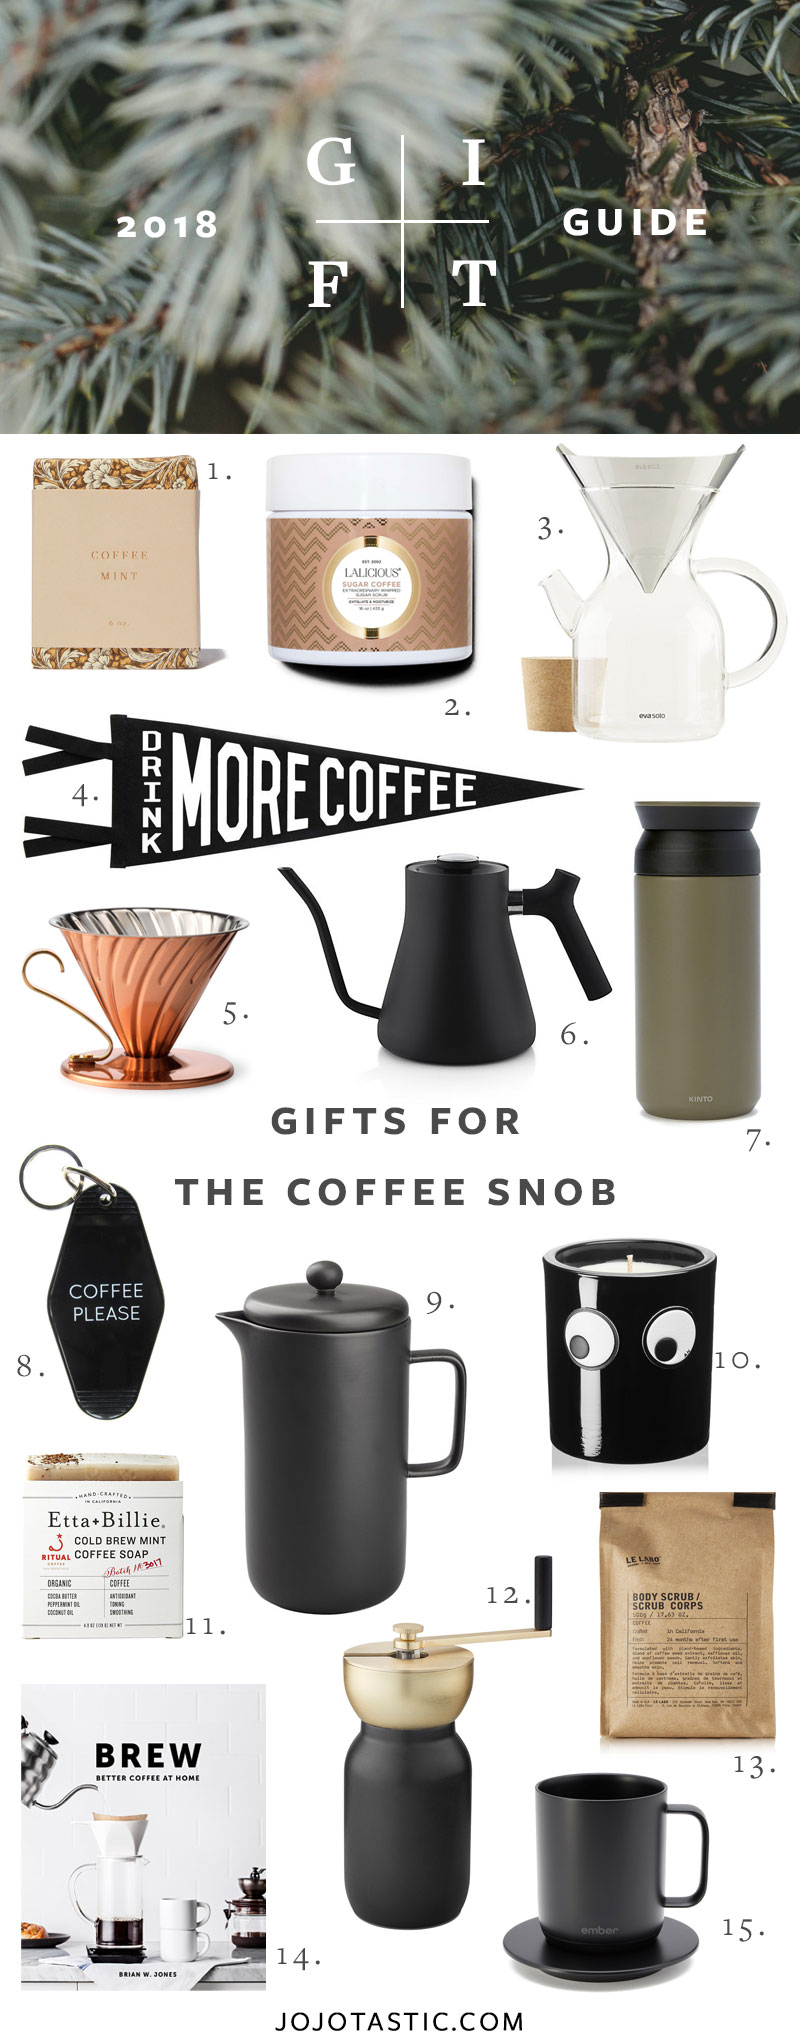 Coffee Gift Ideas, Gift Guide for Christmas & Holidays 2018 via jojotastic.com #giftguide #giftidea #giftgiving #gifts #presents #christmaspresents #christmasgiftideas #christmasgift #homecook #cookinggifts #hostessgifts #coffeesnob #coffeegifts